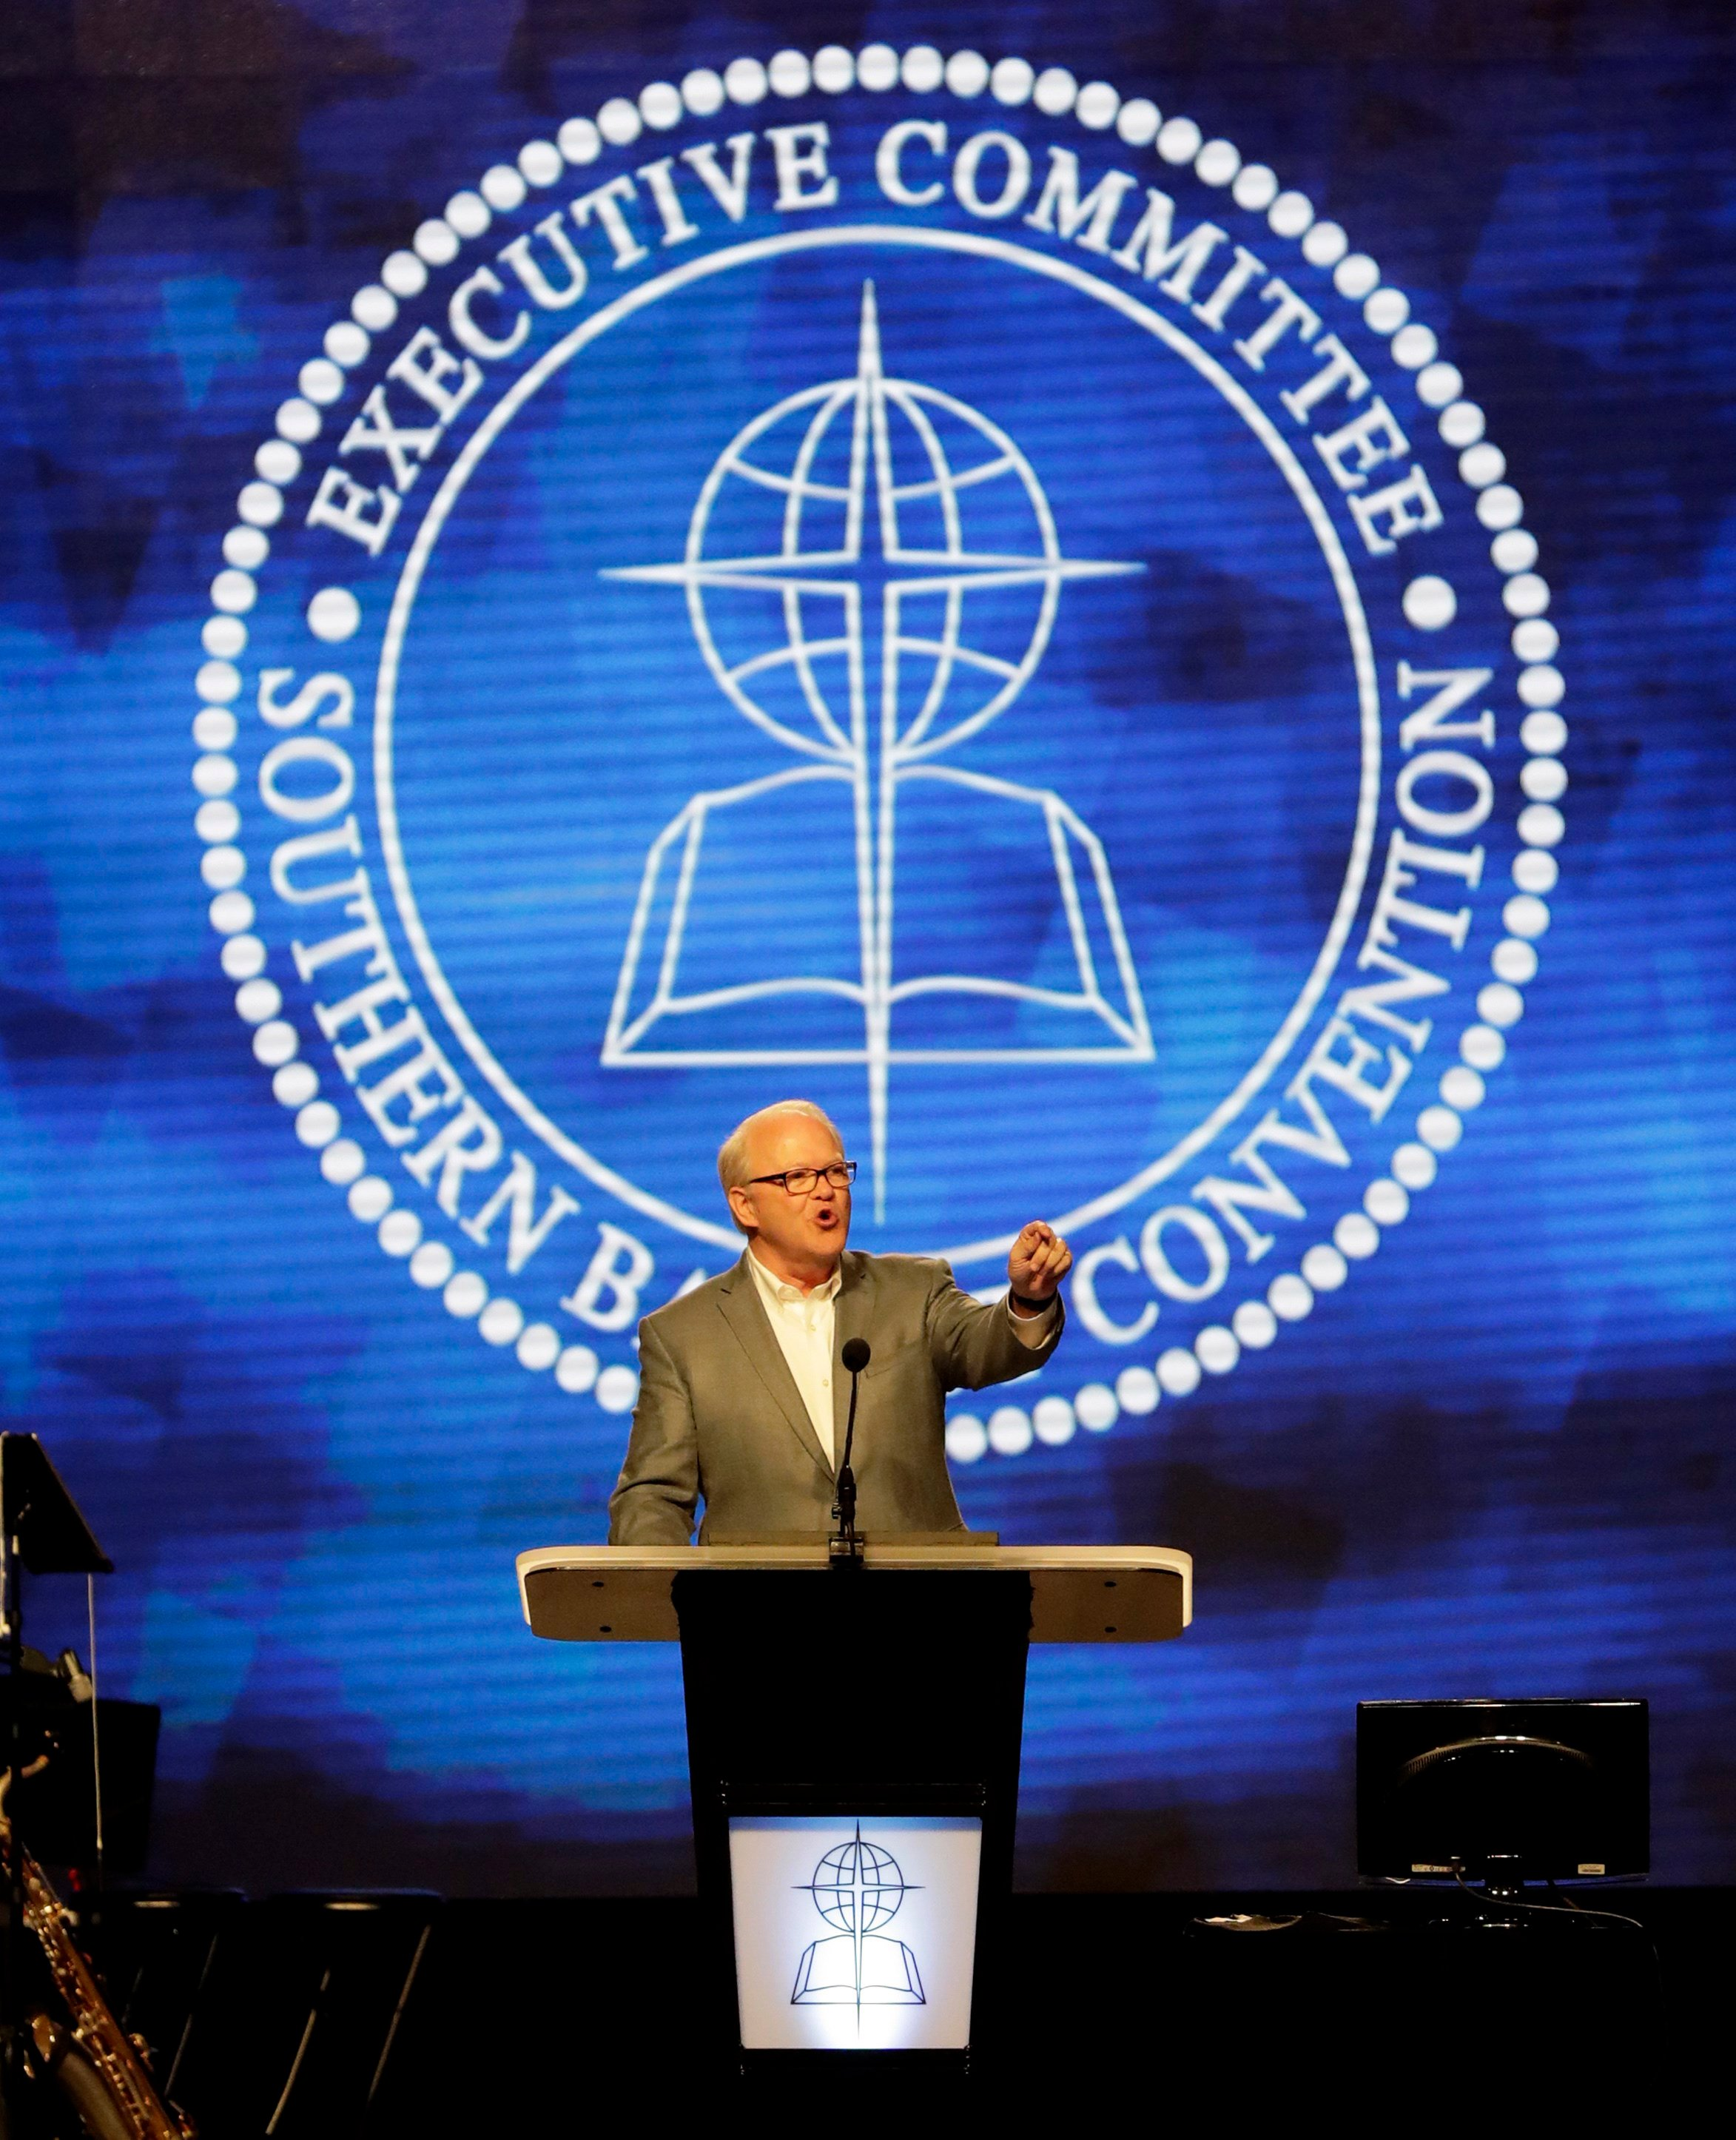 Southern Baptist Executive Committee President Frank S. Page speaks during the Southern Baptist Convention annual meeting, Tuesday, June 13, 2017, in Phoenix. (AP Photo/Matt York)